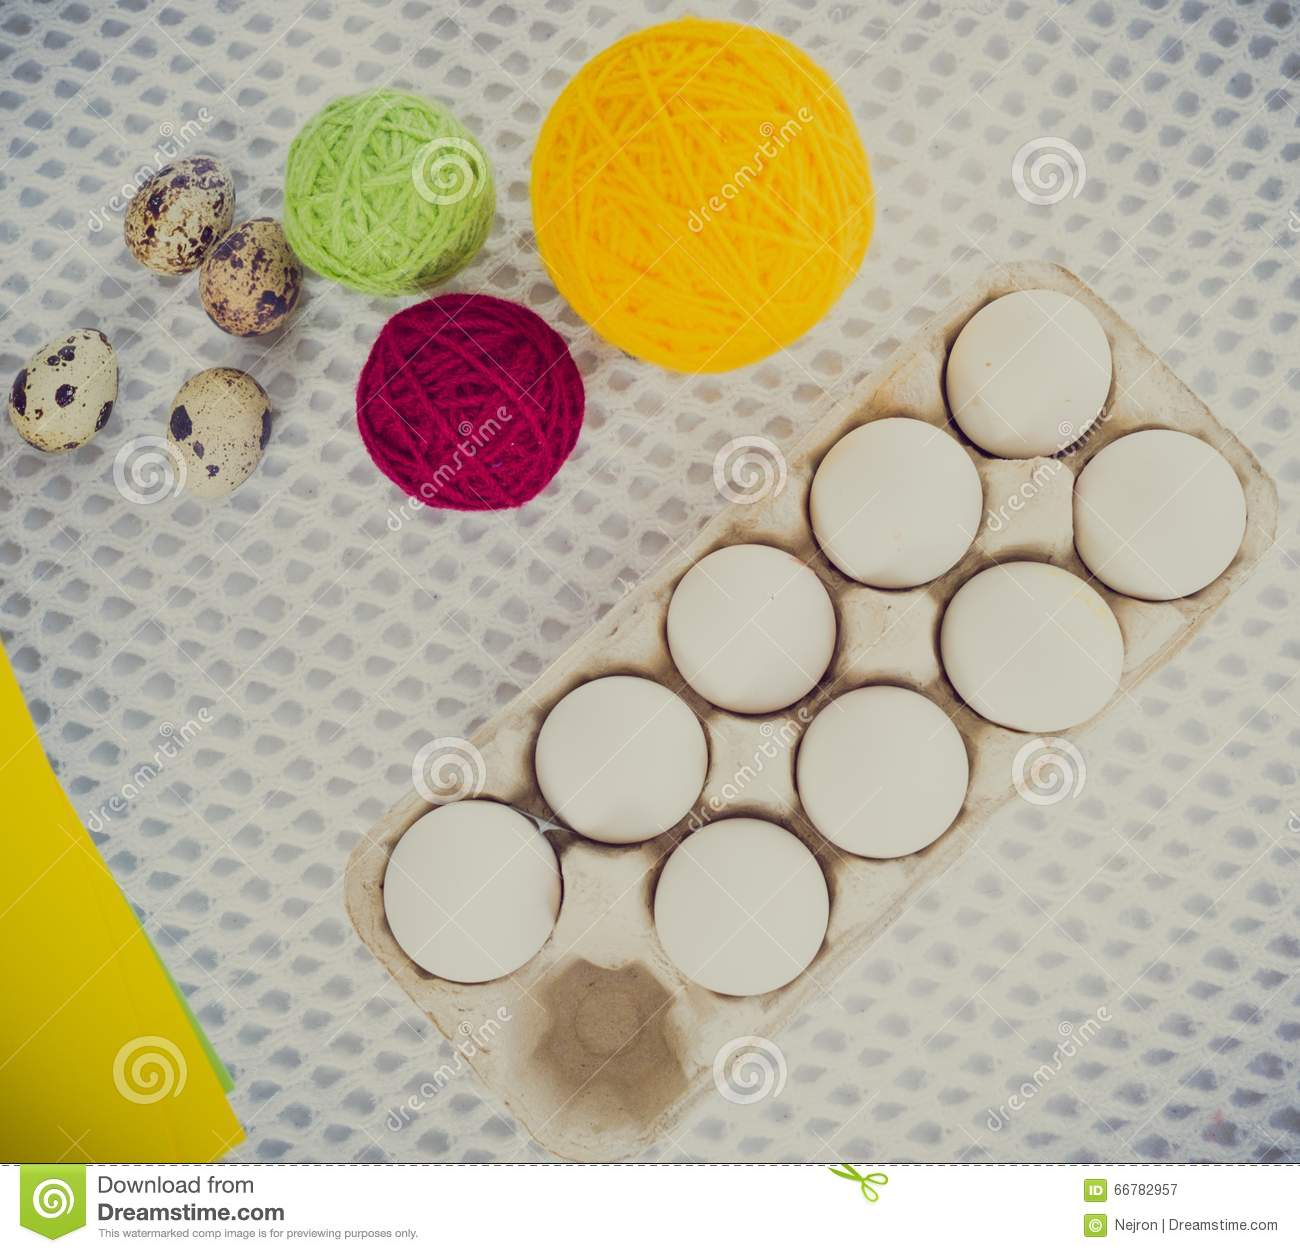 Close-up Easter Egg Decorating And Painting Tools. Stock Image ...